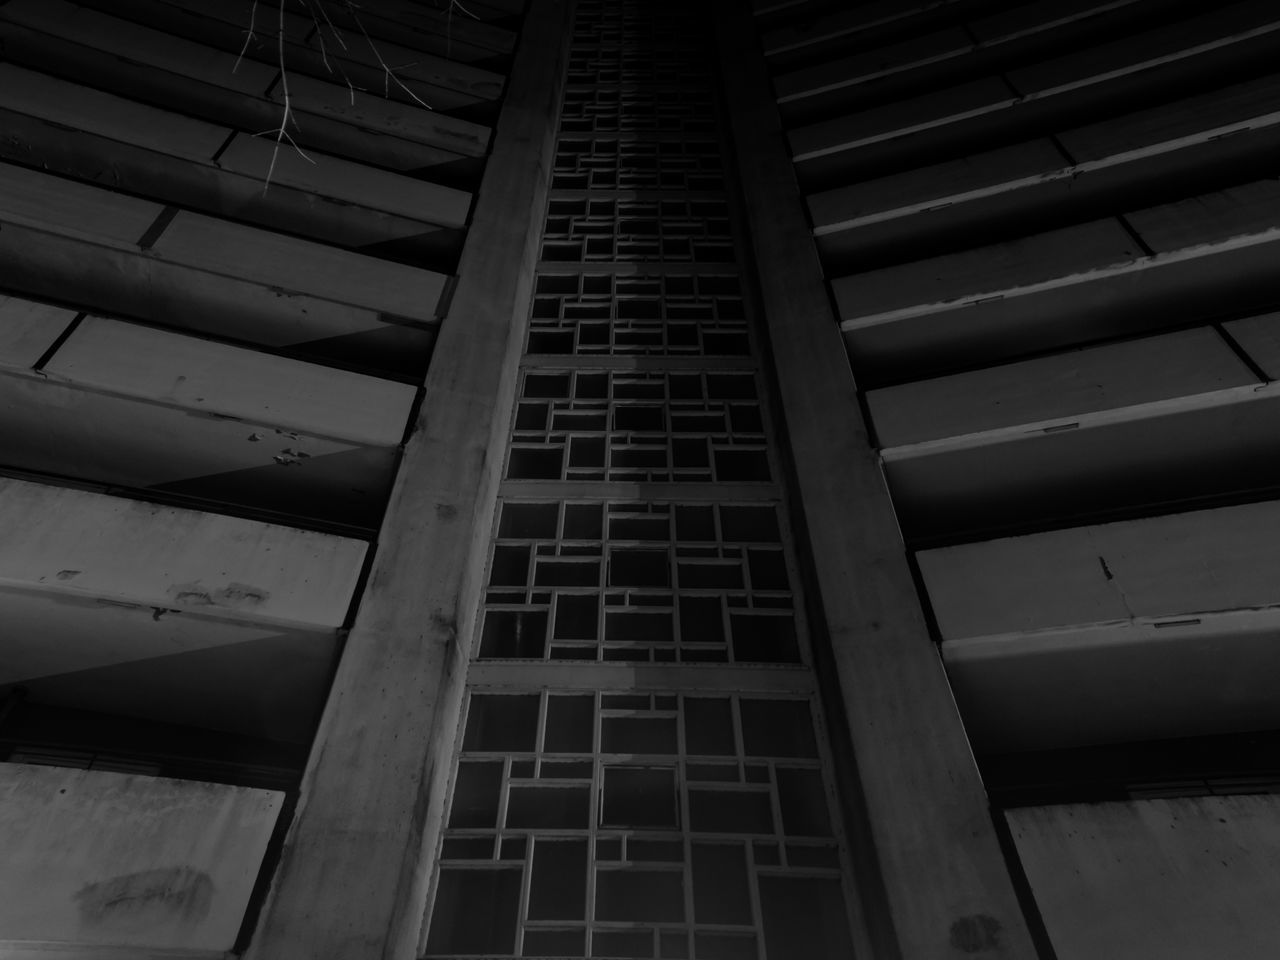 Langzeitbelichtung Texture B&w Street Photography Lightart Blackandwhite Skyscrapers Night Long Exposure Architecture Urban Geometry Urbanphotography Hamburg Cityscapes Streetphotography Light And Shadow Darkness And Light Challenged myself to take a shot From My Doorstep . That's the result. Rows Of Things Architecture_collection Architecture_bw Learn & Shoot: After Dark